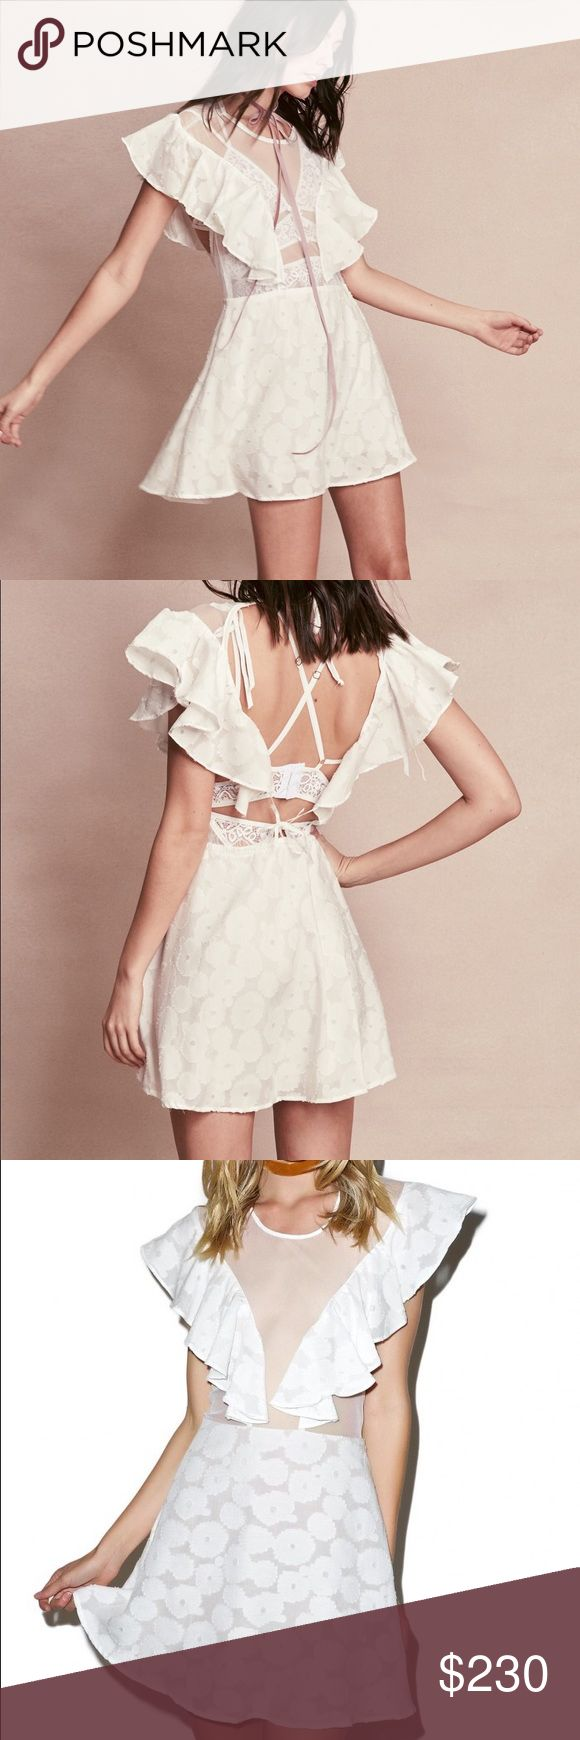 For Love and Lemons Buttercup Dress For Love & Lemons Buttercup Mini Dress.  this gorgeous little dress is beautifully constructed from a super soft burnout daisy print and flattering A-line flowing skirt with nude lining. Featuring a slim fitting sheer bodice perfect for wearing solo or layering a pretty bralette underneath with cascading ruffle accents and sensual open back with dual tie closures.  Materials: 55% Silk, 45% Cotton; Lining: 100% Nylon Dry Clean Only Last model wears XS and…